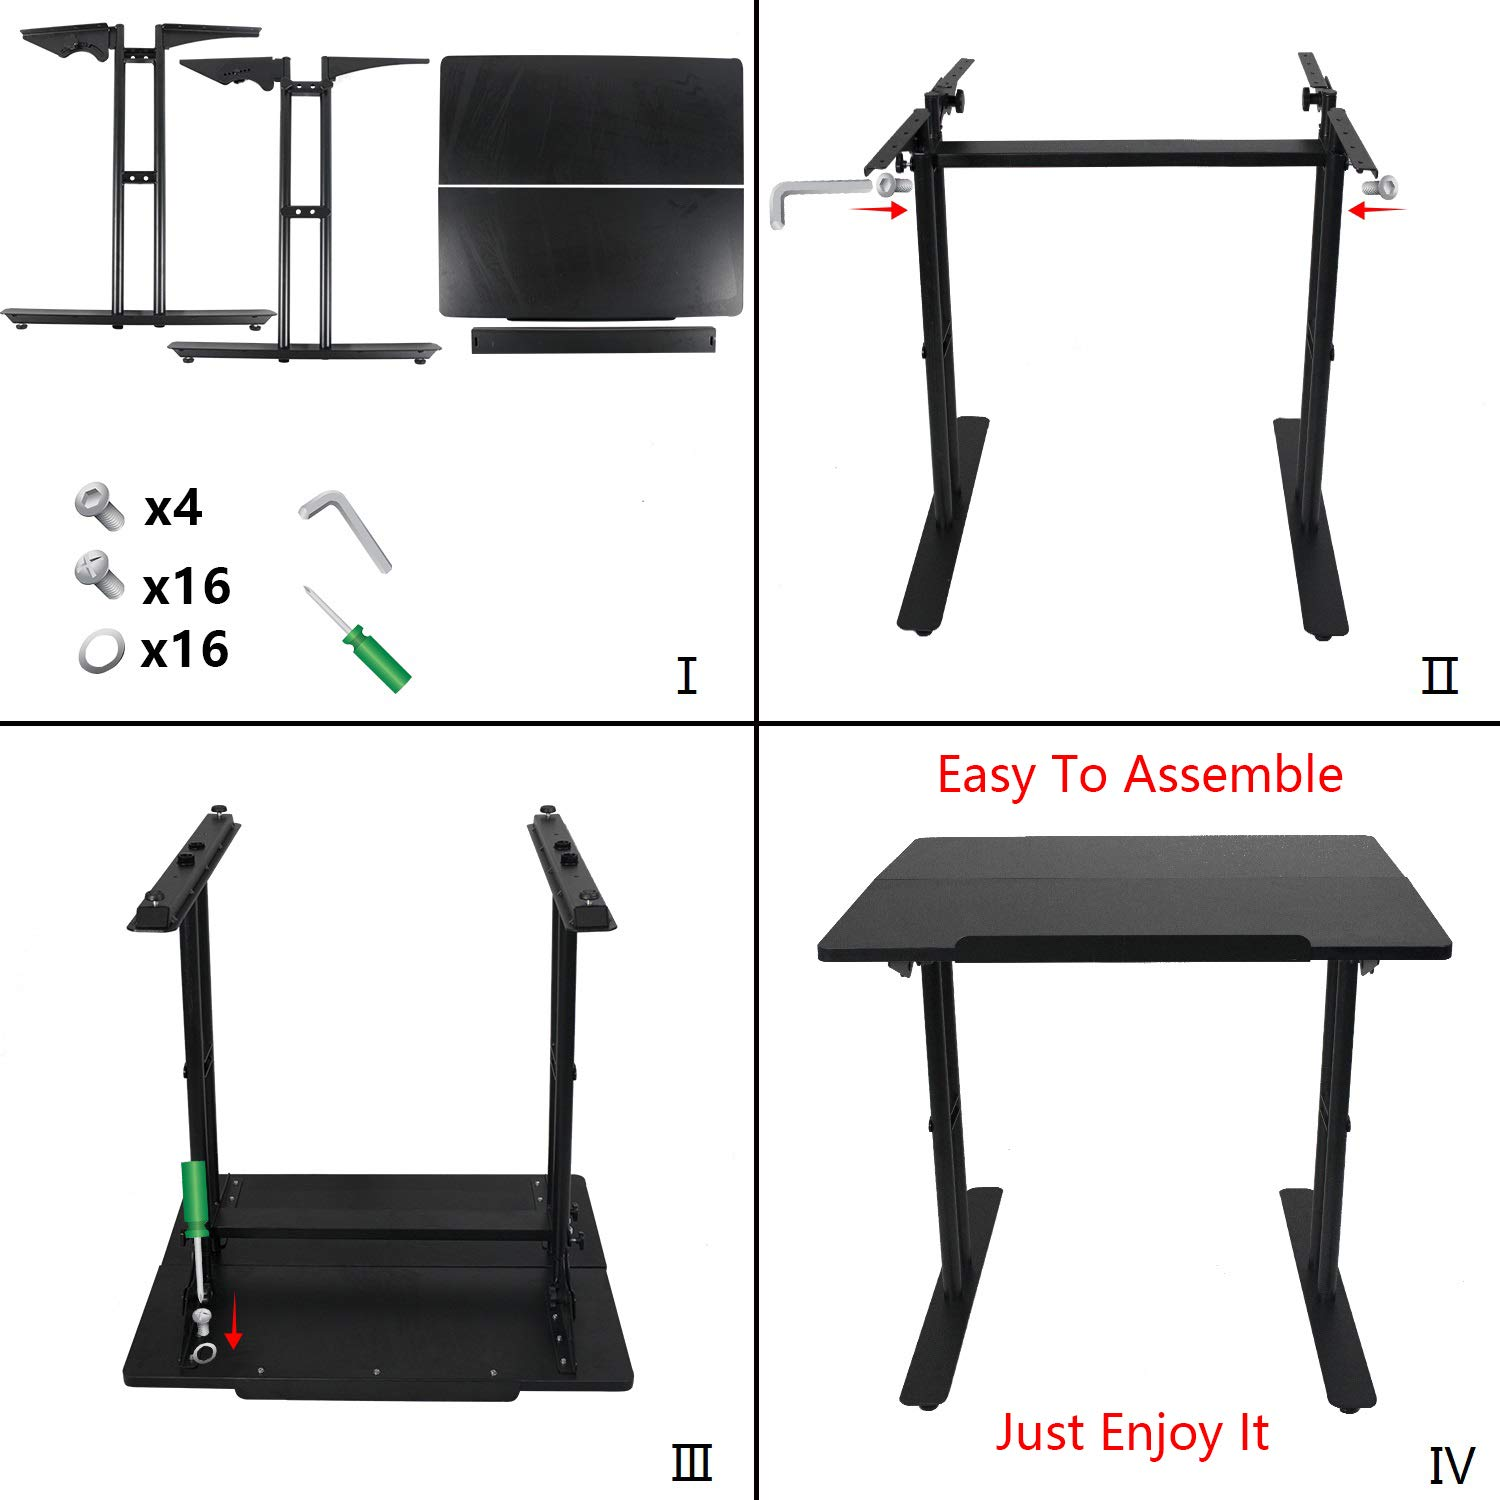 Heyesk Stand Up Desk Height Adjustable Home Office Desk with Standing (Black) by heyesk (Image #4)